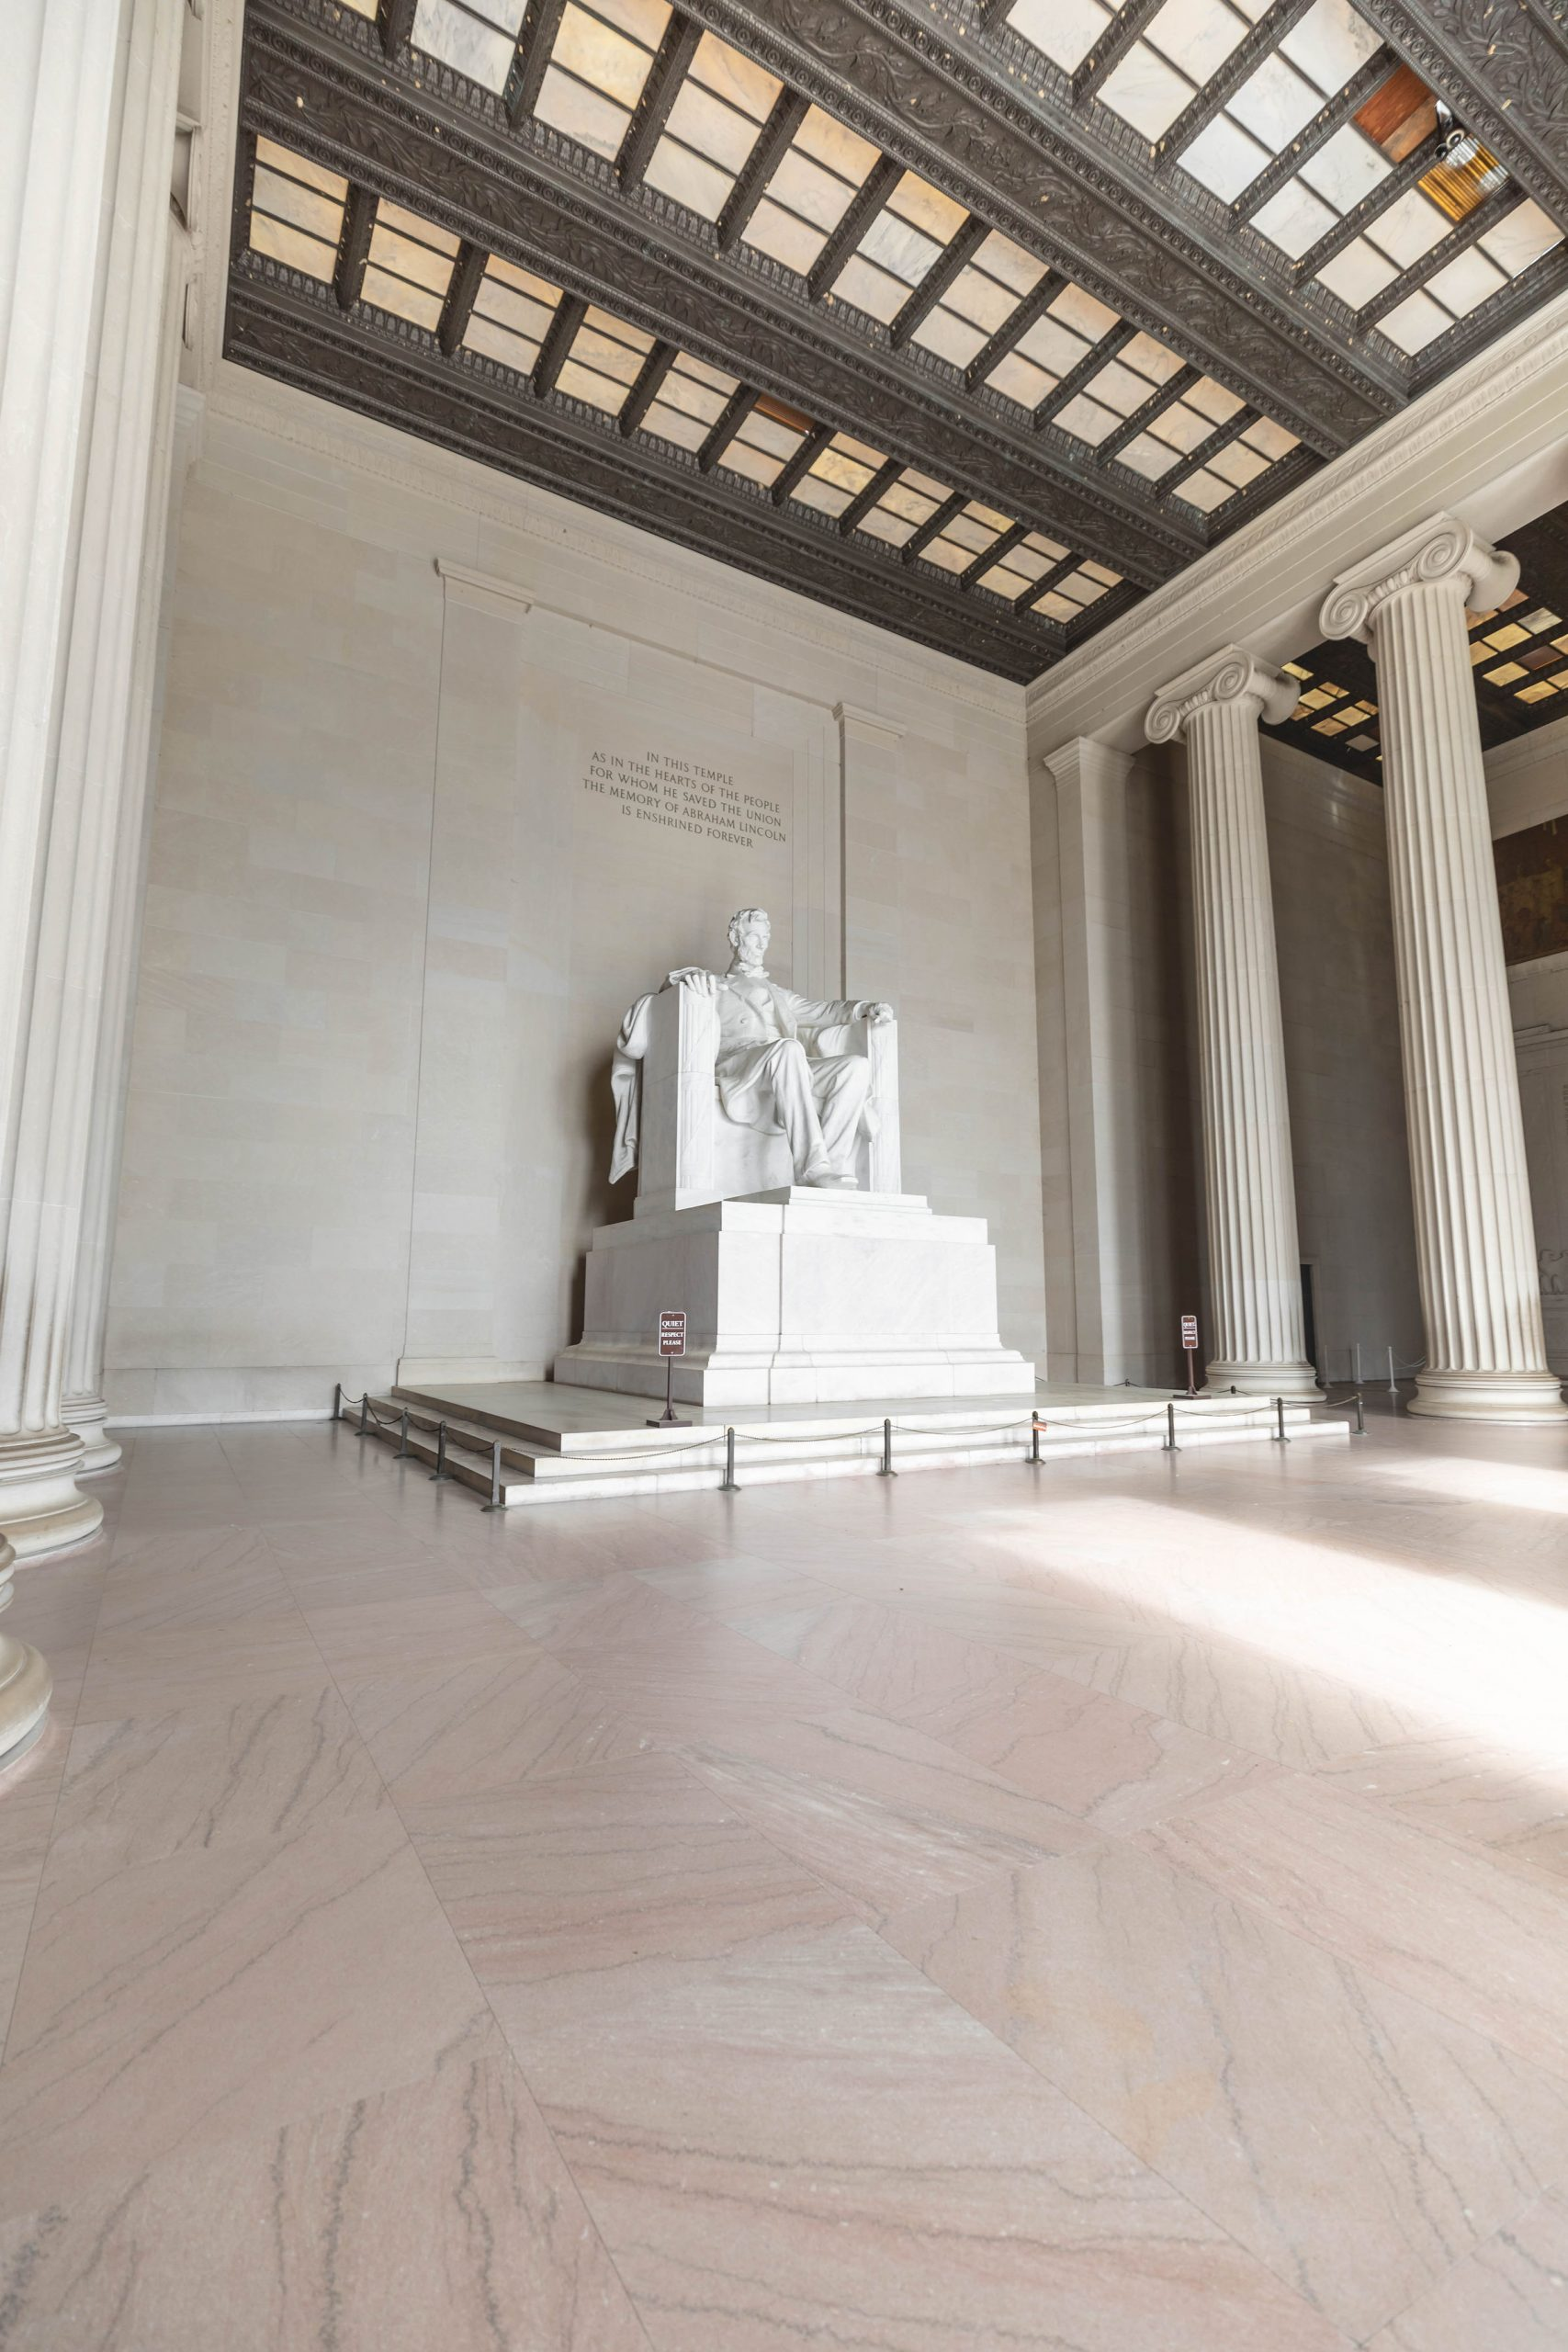 Lincoln Memorial Statue of Abraham Lincoln at Mall of America in Washington DC Photographed by Luxury Travel Writer Annie Fairfax